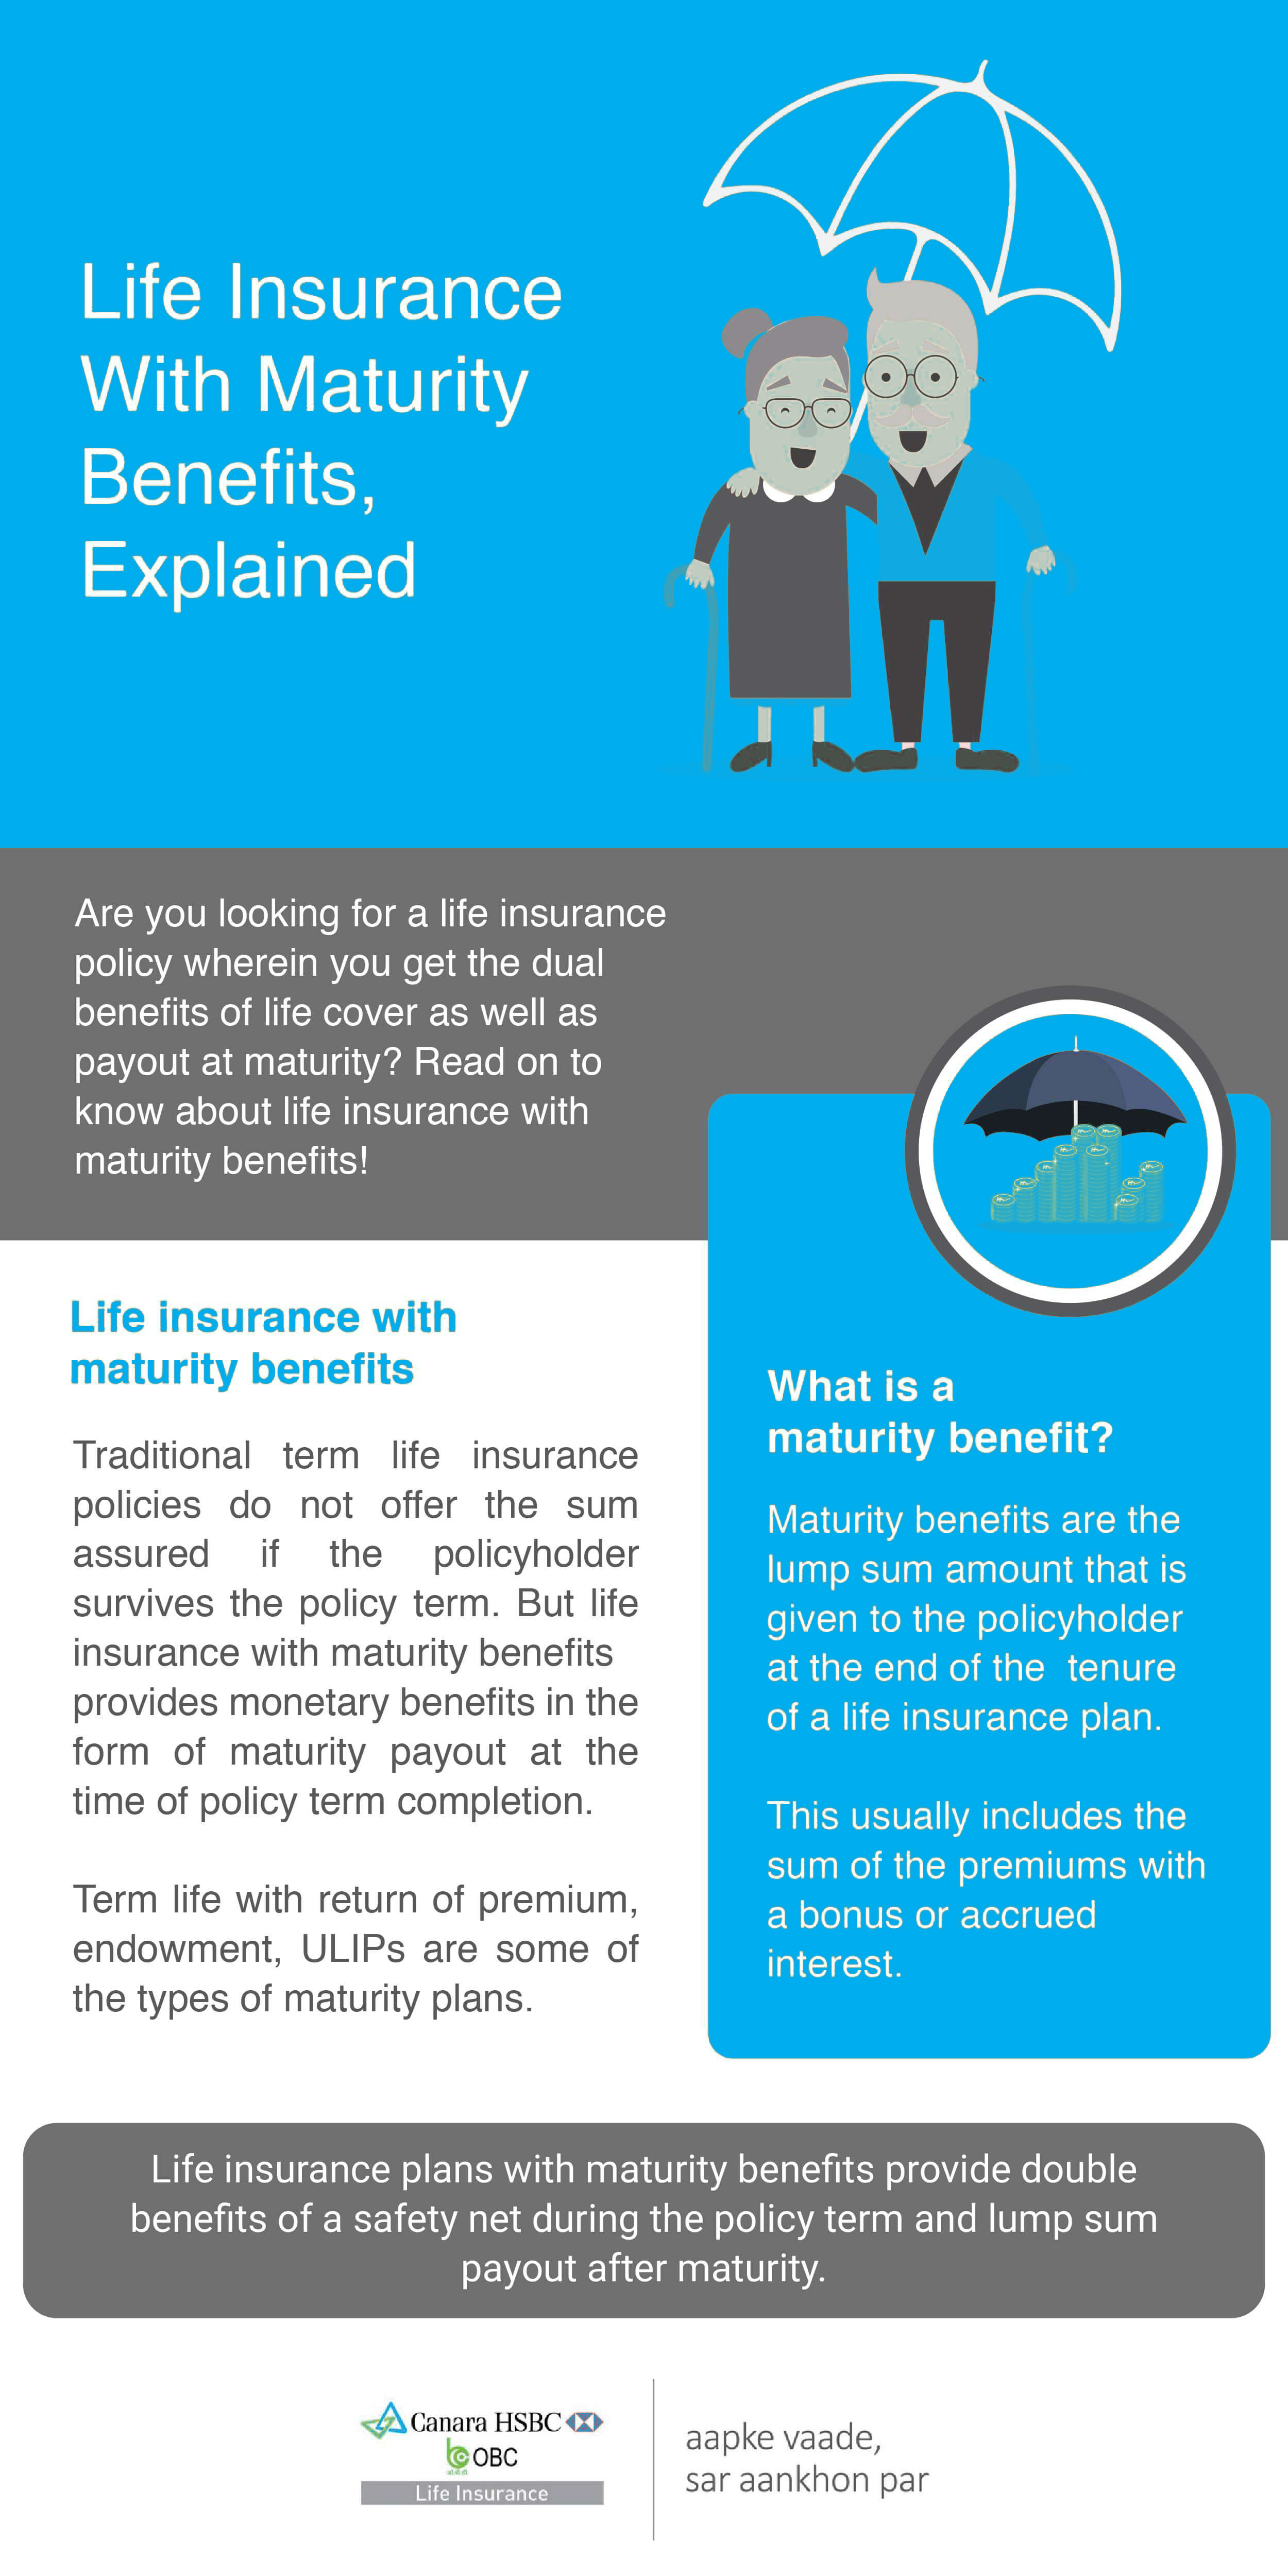 Life Insurance With Maturity Benefits